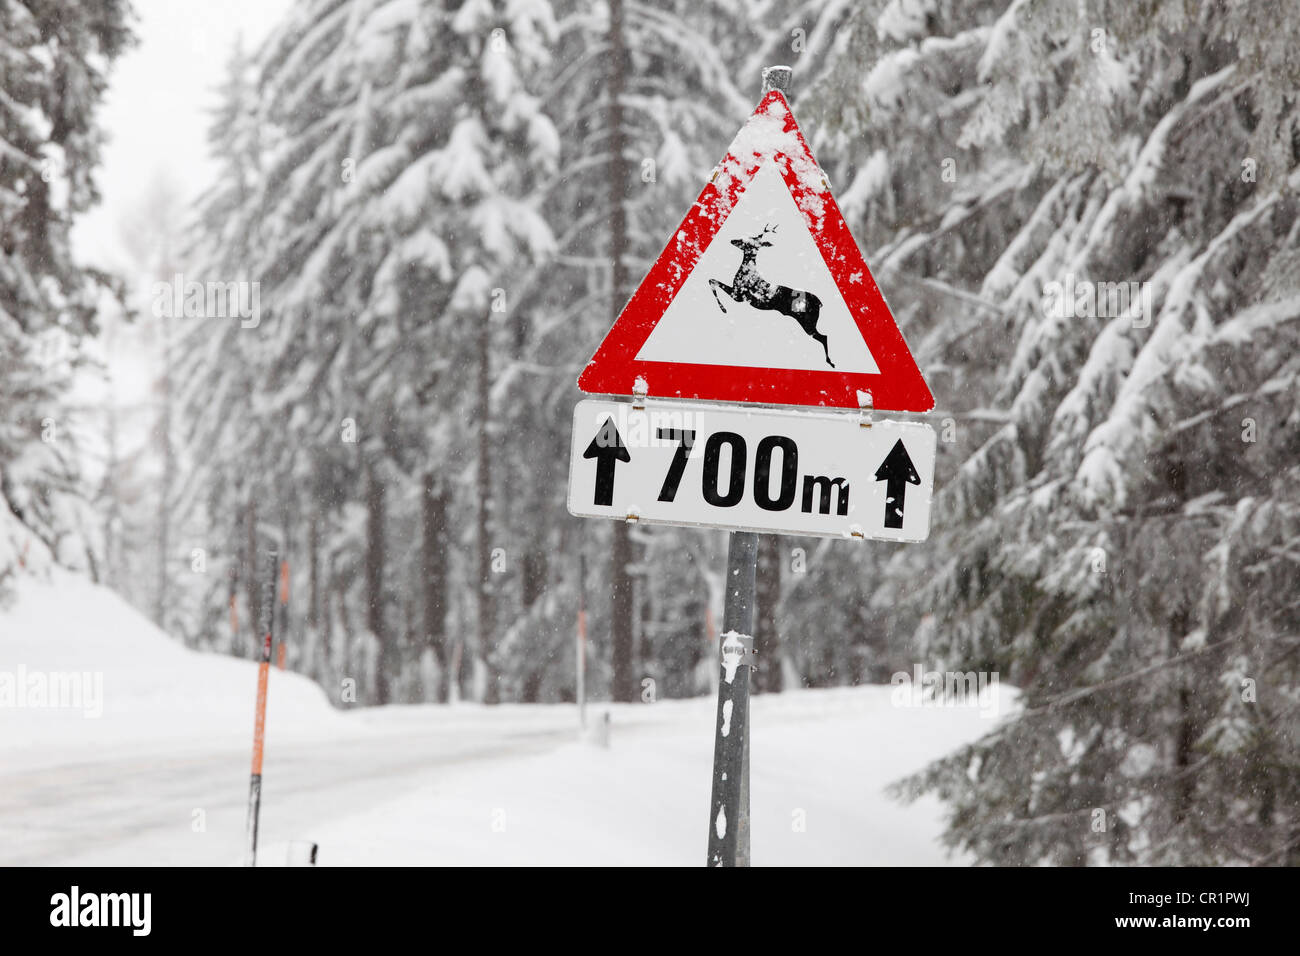 Road sign, Caution deer crossing, Oetscher-Tormaeuer Nature Park, Mostviertel, Must Quarter, Lower Austria, Austria, - Stock Image